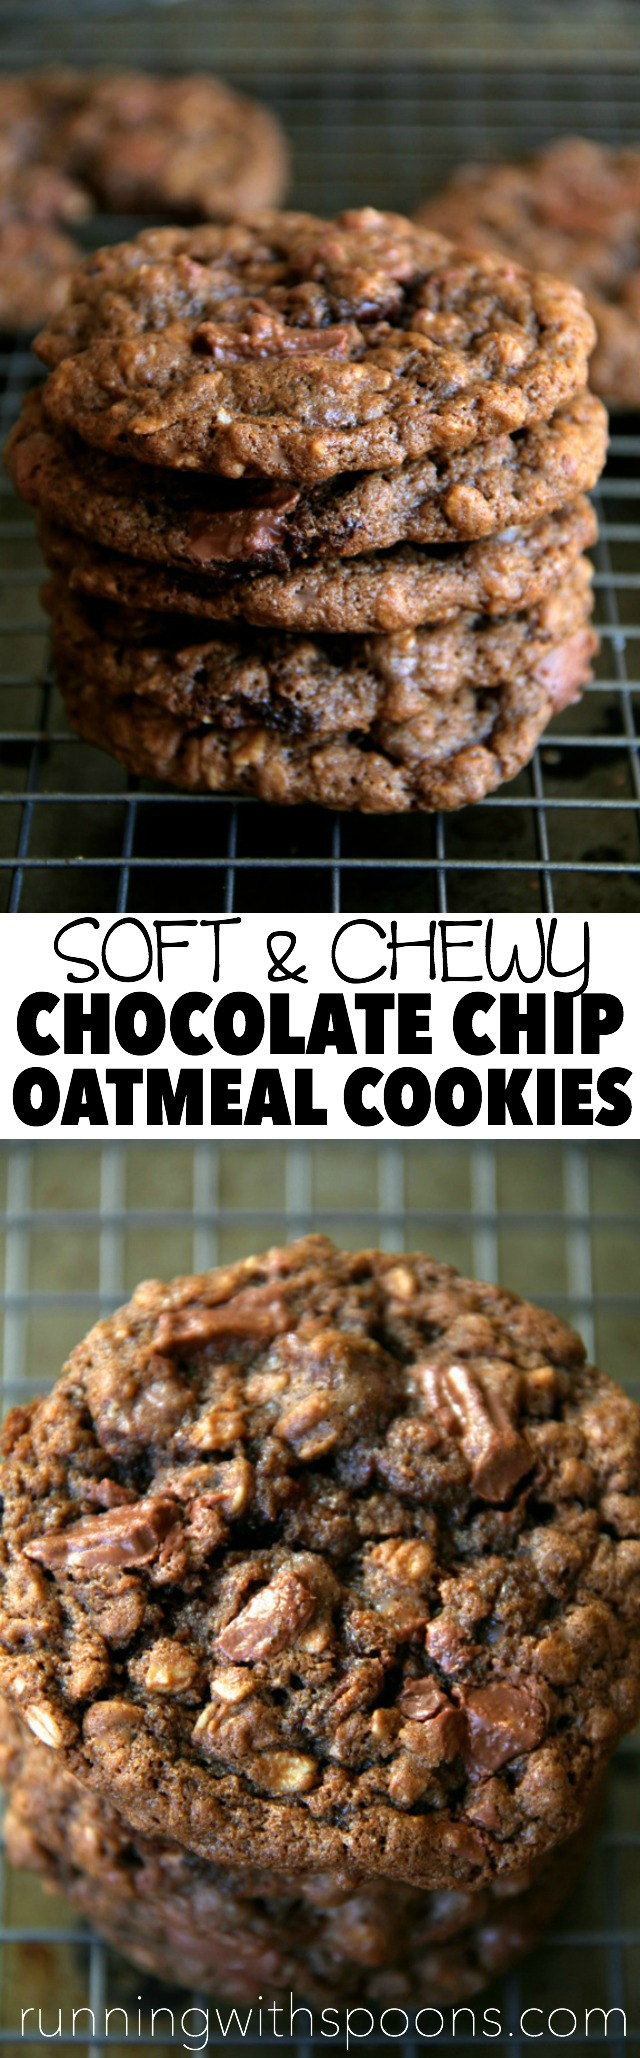 Double Chocolate Chip Oatmeal Cookies -- soft, chewy, and LOADED with chocolate flavour. The perfect treat for any chocolate lover! || runningwithspoons.com #chocolate #oatmeal #cookies